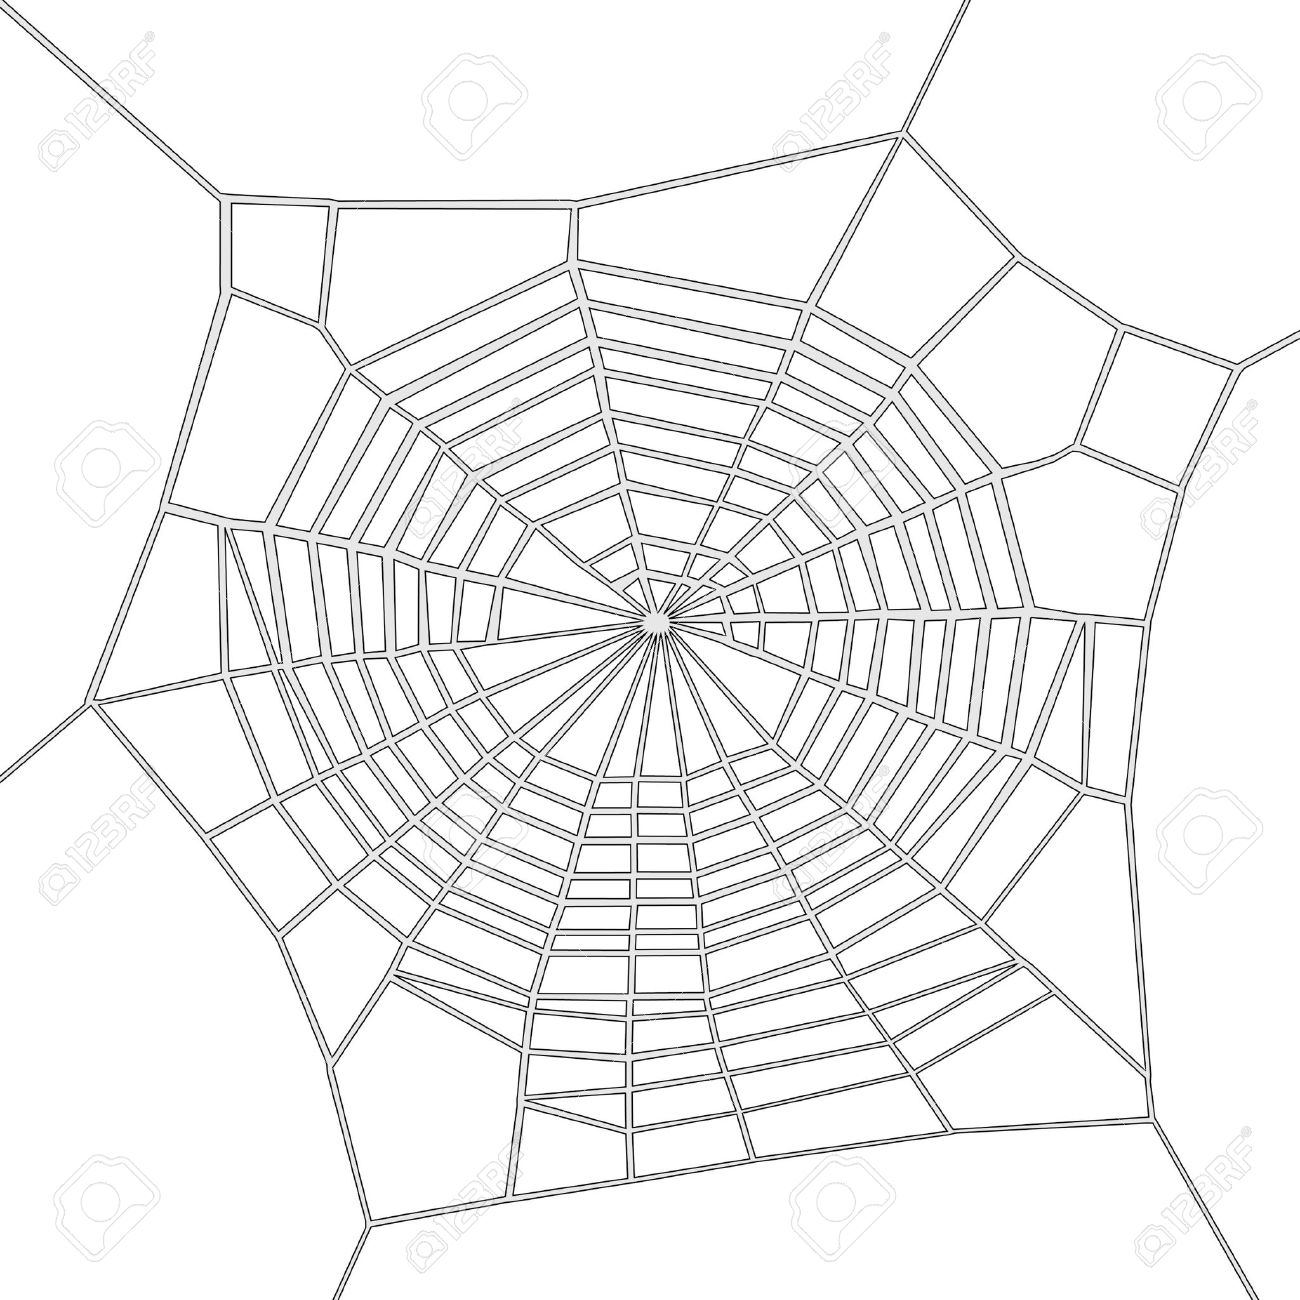 1300x1300 Spider Web Cartoon Drawing Cartoon Image Of Spider Web Stock Photo